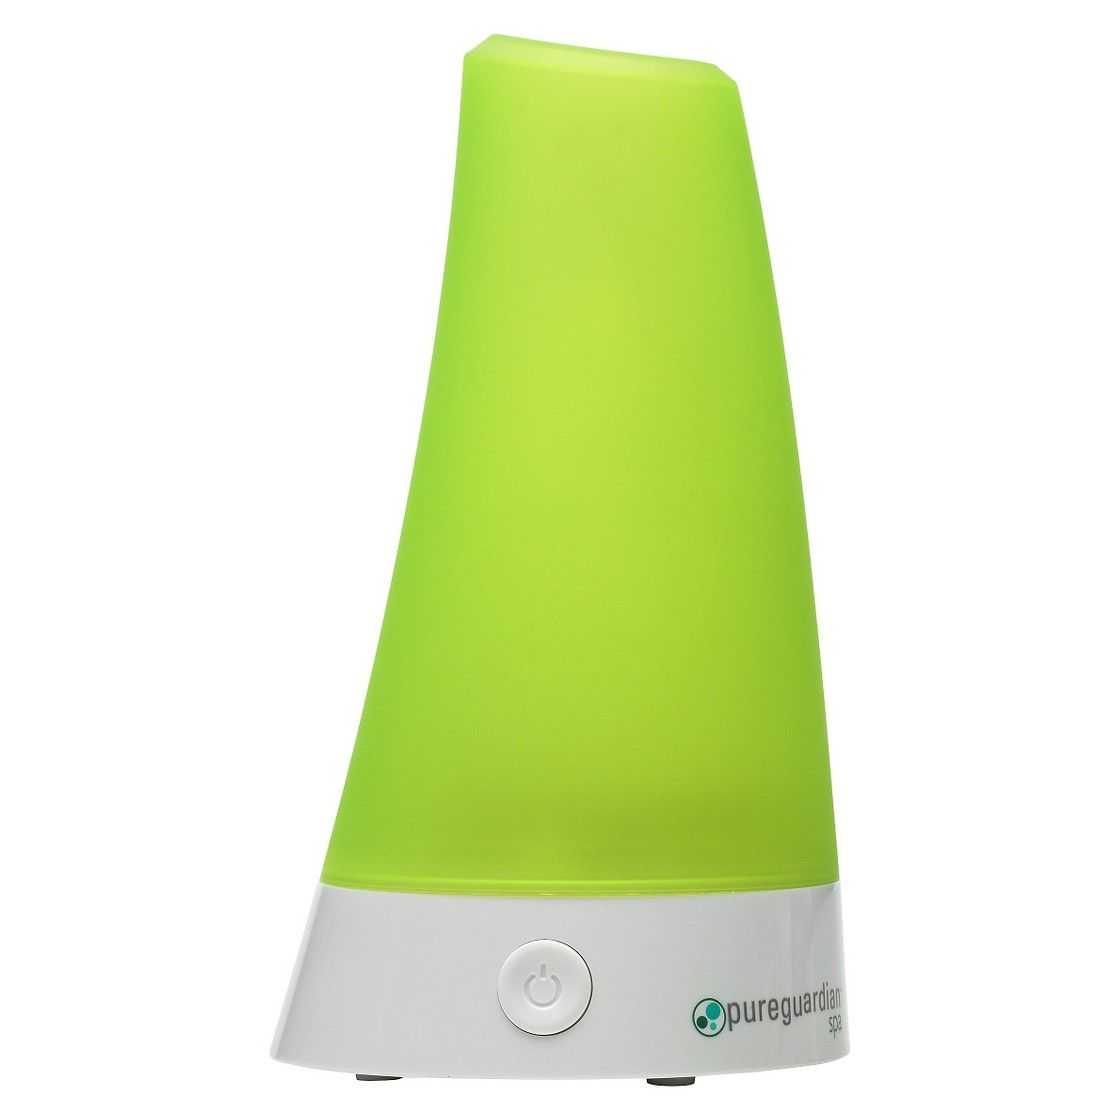 PureGuardian Aromatherapy Essential Oil Diffuser - Spring Green